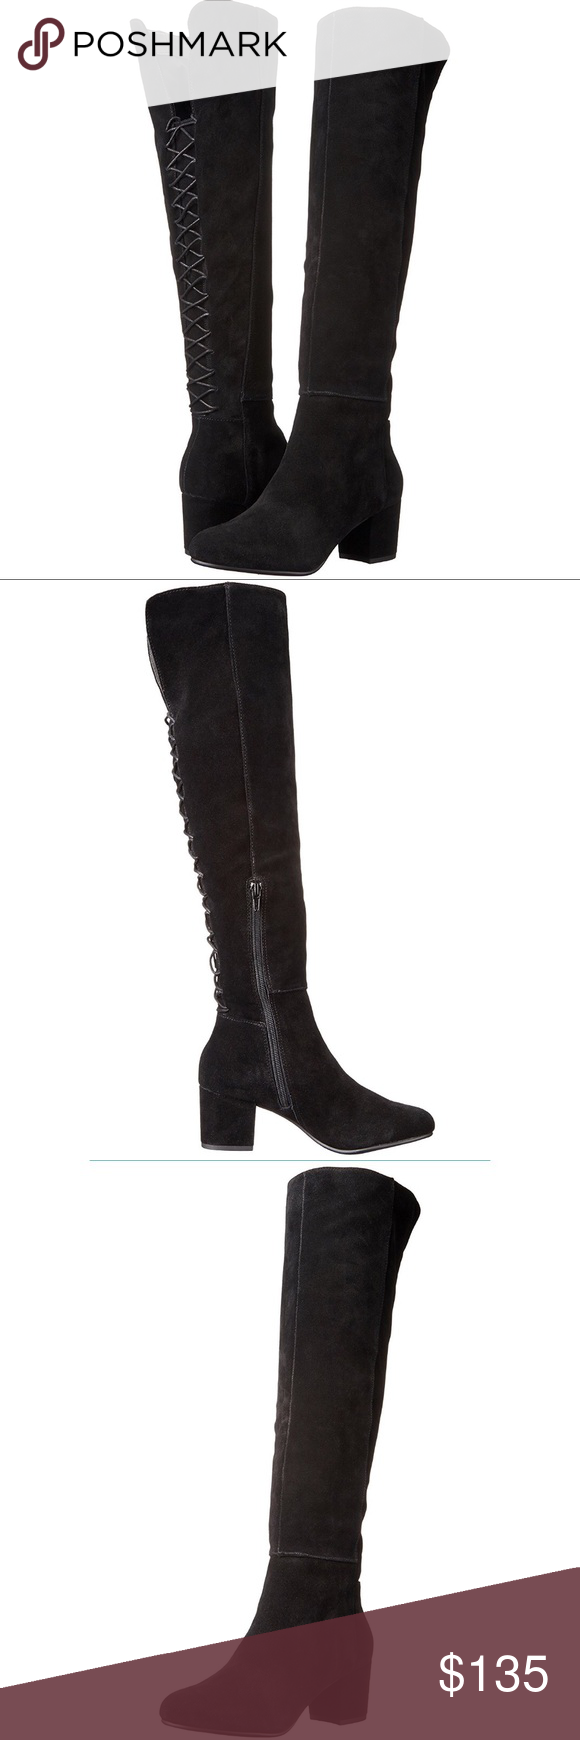 f23ea54722a NWOT NEVER WORN Steve Madden Tall Lace-Up Boot This Steve Madden ...